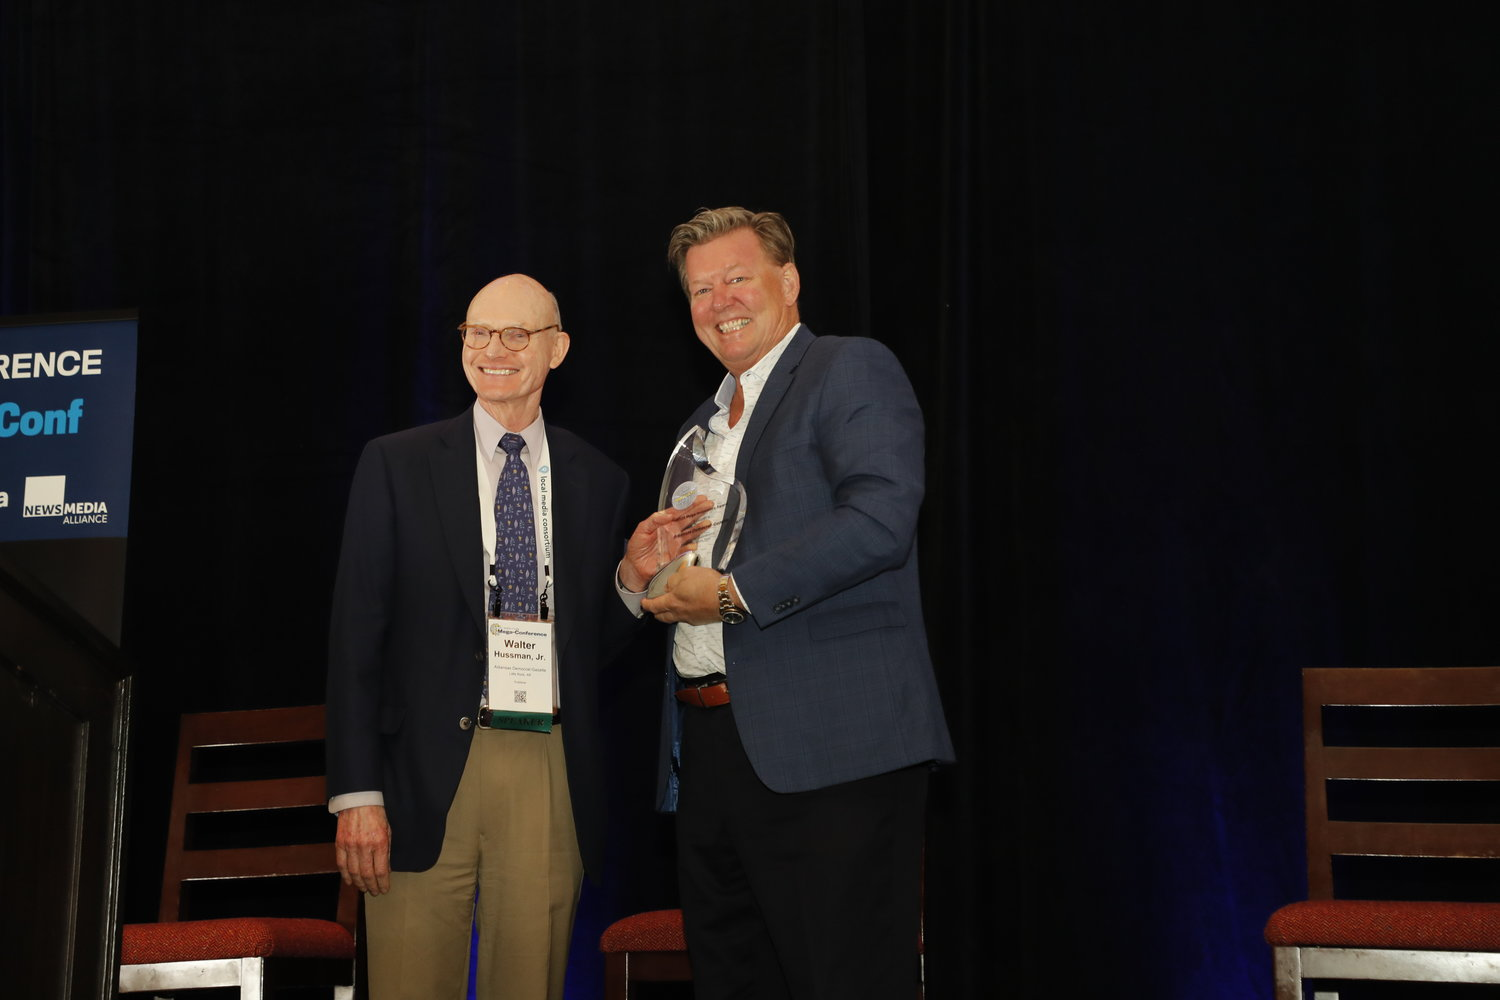 Dave Kennedy, of the Honolulu Star-Advertiser and 2018 recipient of the Mega-Innovation Award, presents Walter E. Hussman Jr., of the Arkansas Democrat-Gazette, with this year's Mega-Innovation Award. (Photo by Bob Booth)